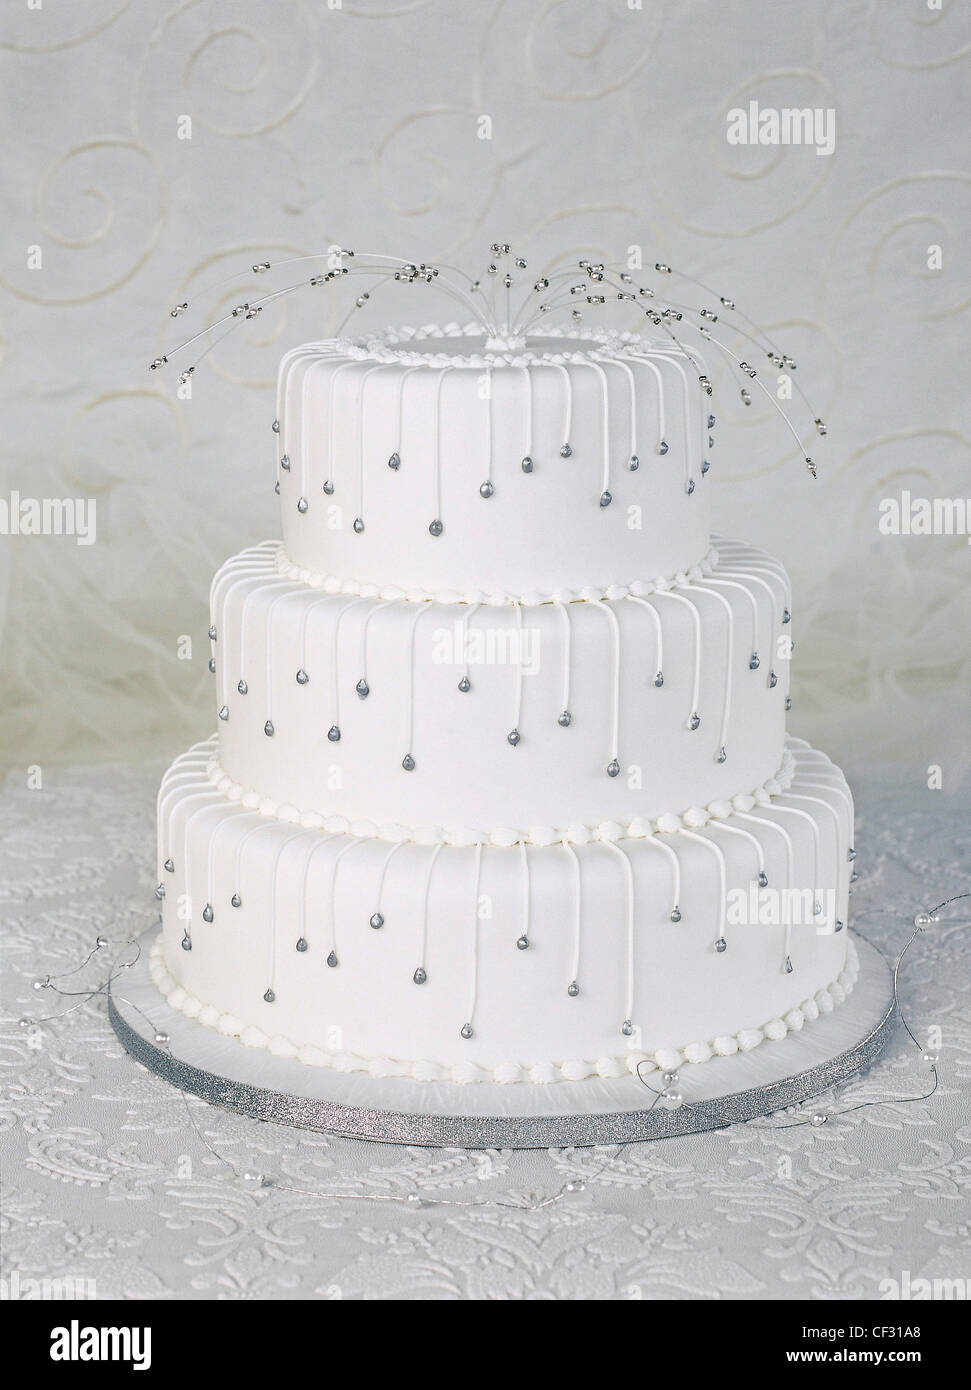 Fondant iced carrot cake with piping detail on white icing and spray ...